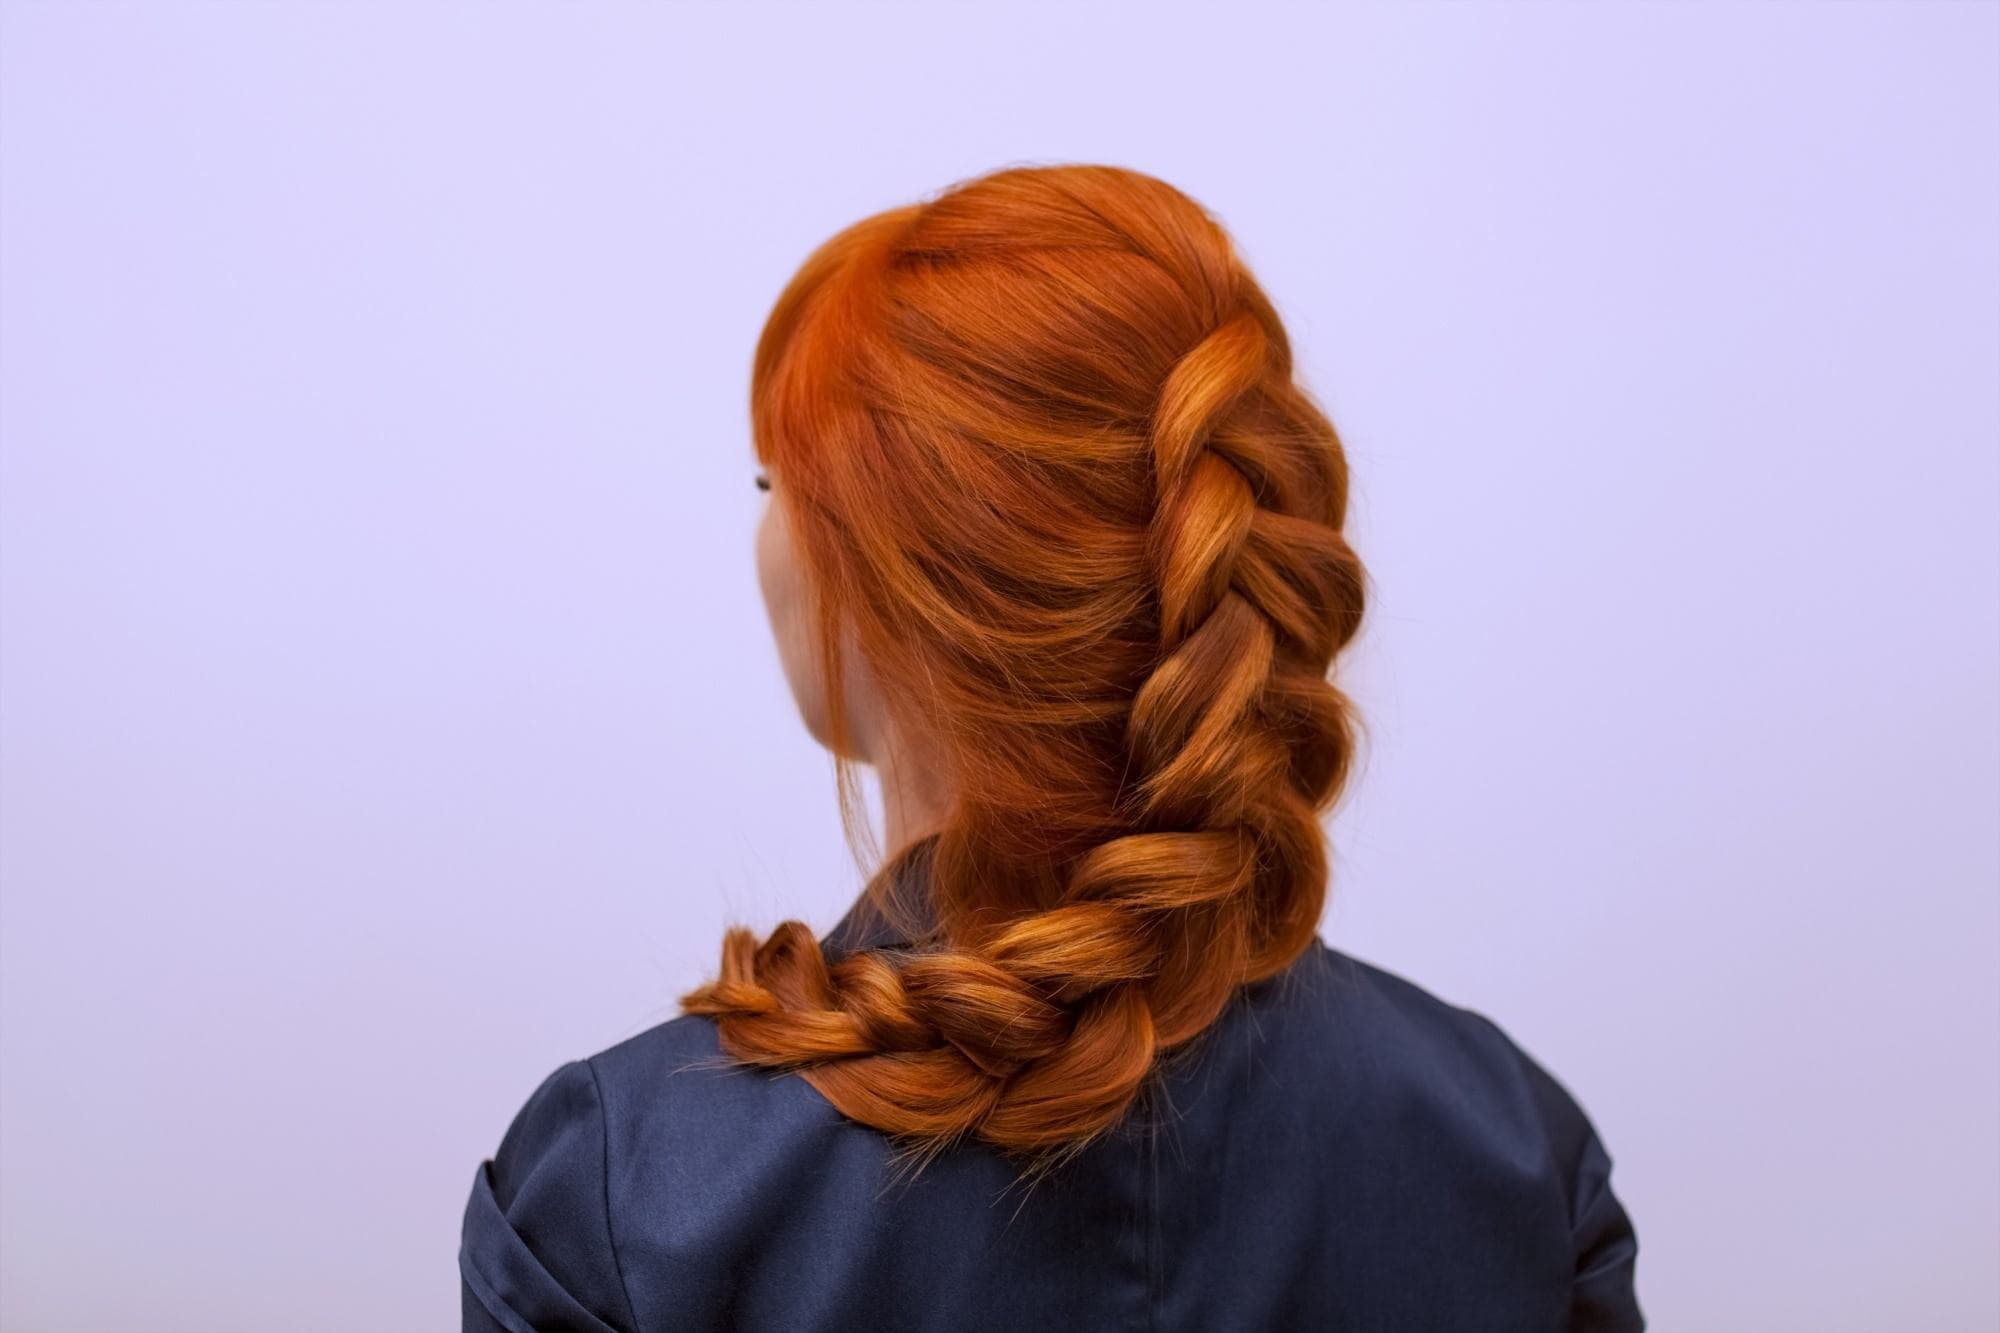 Bleached hair colors: back of a woman with a braided coral copper hair